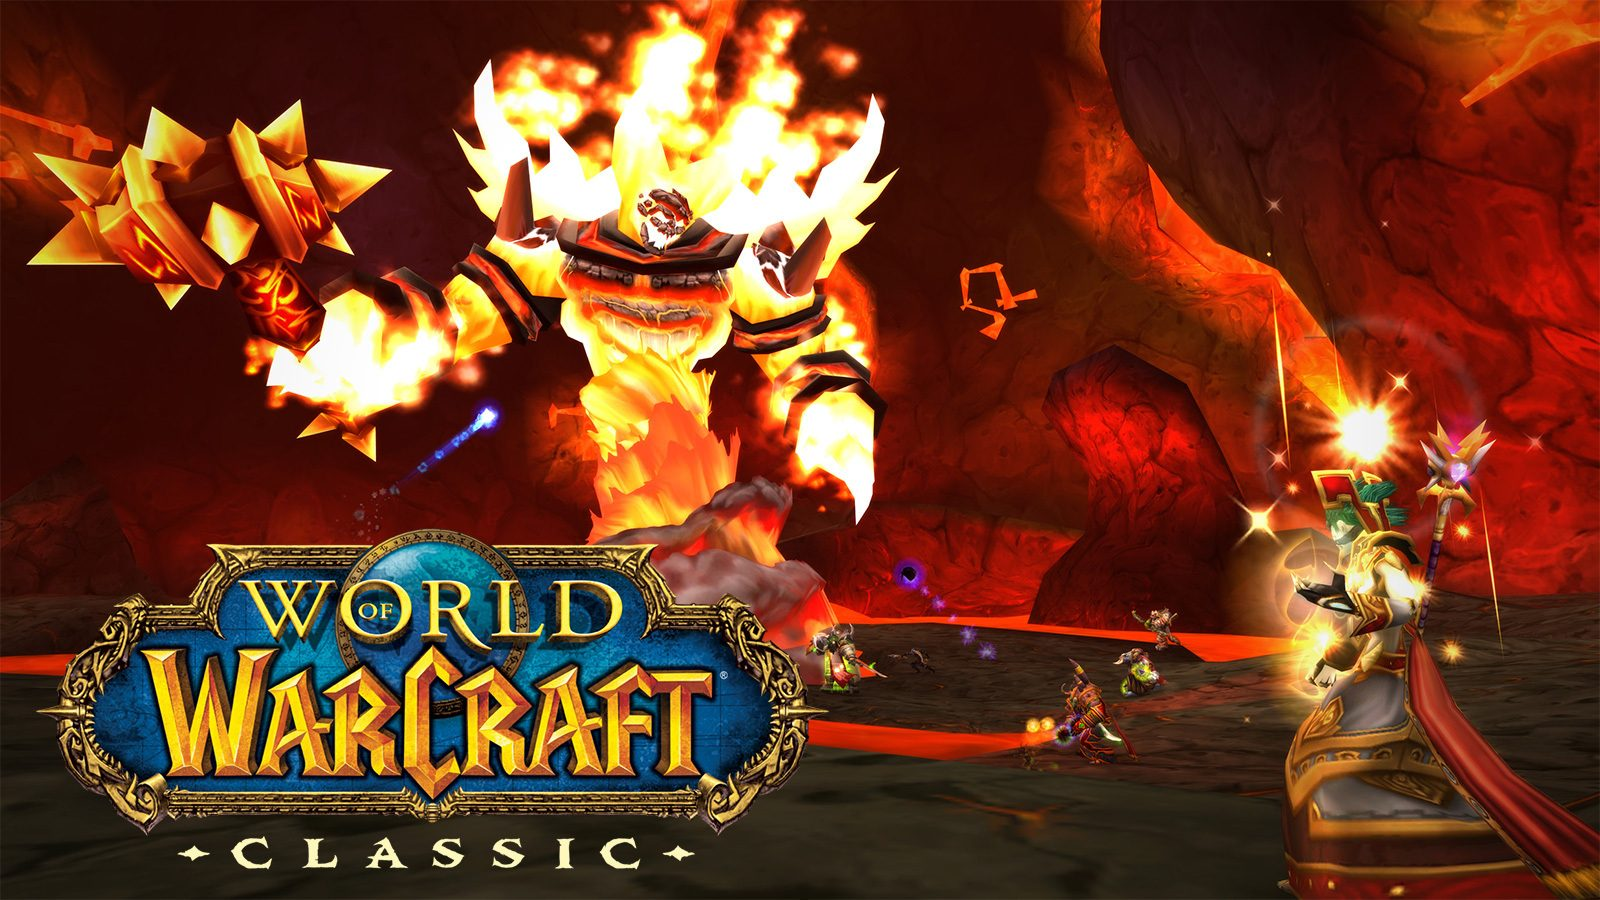 WoW Classic will send millions of players home again tonight